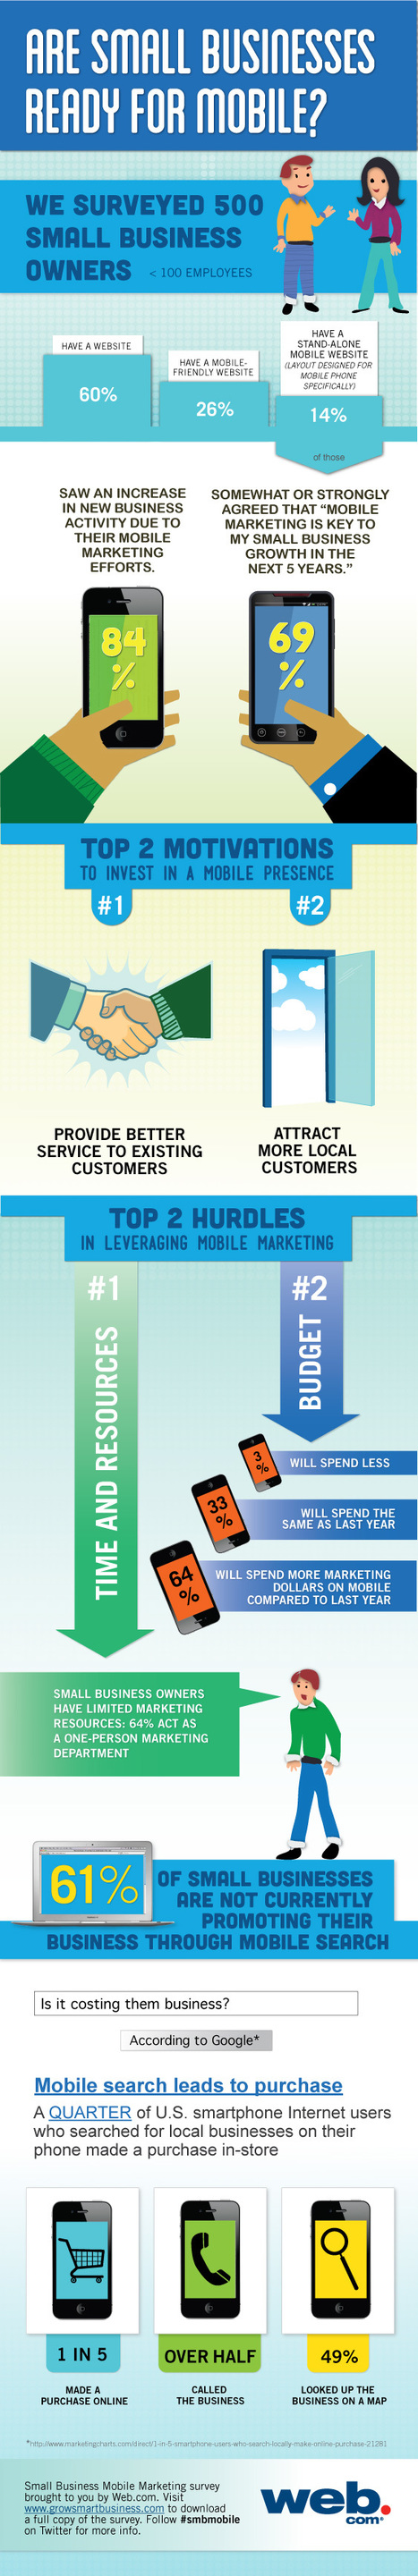 Are Small Businesses Ready for Mobile (infographic) | MarketingHits | Scoop.it